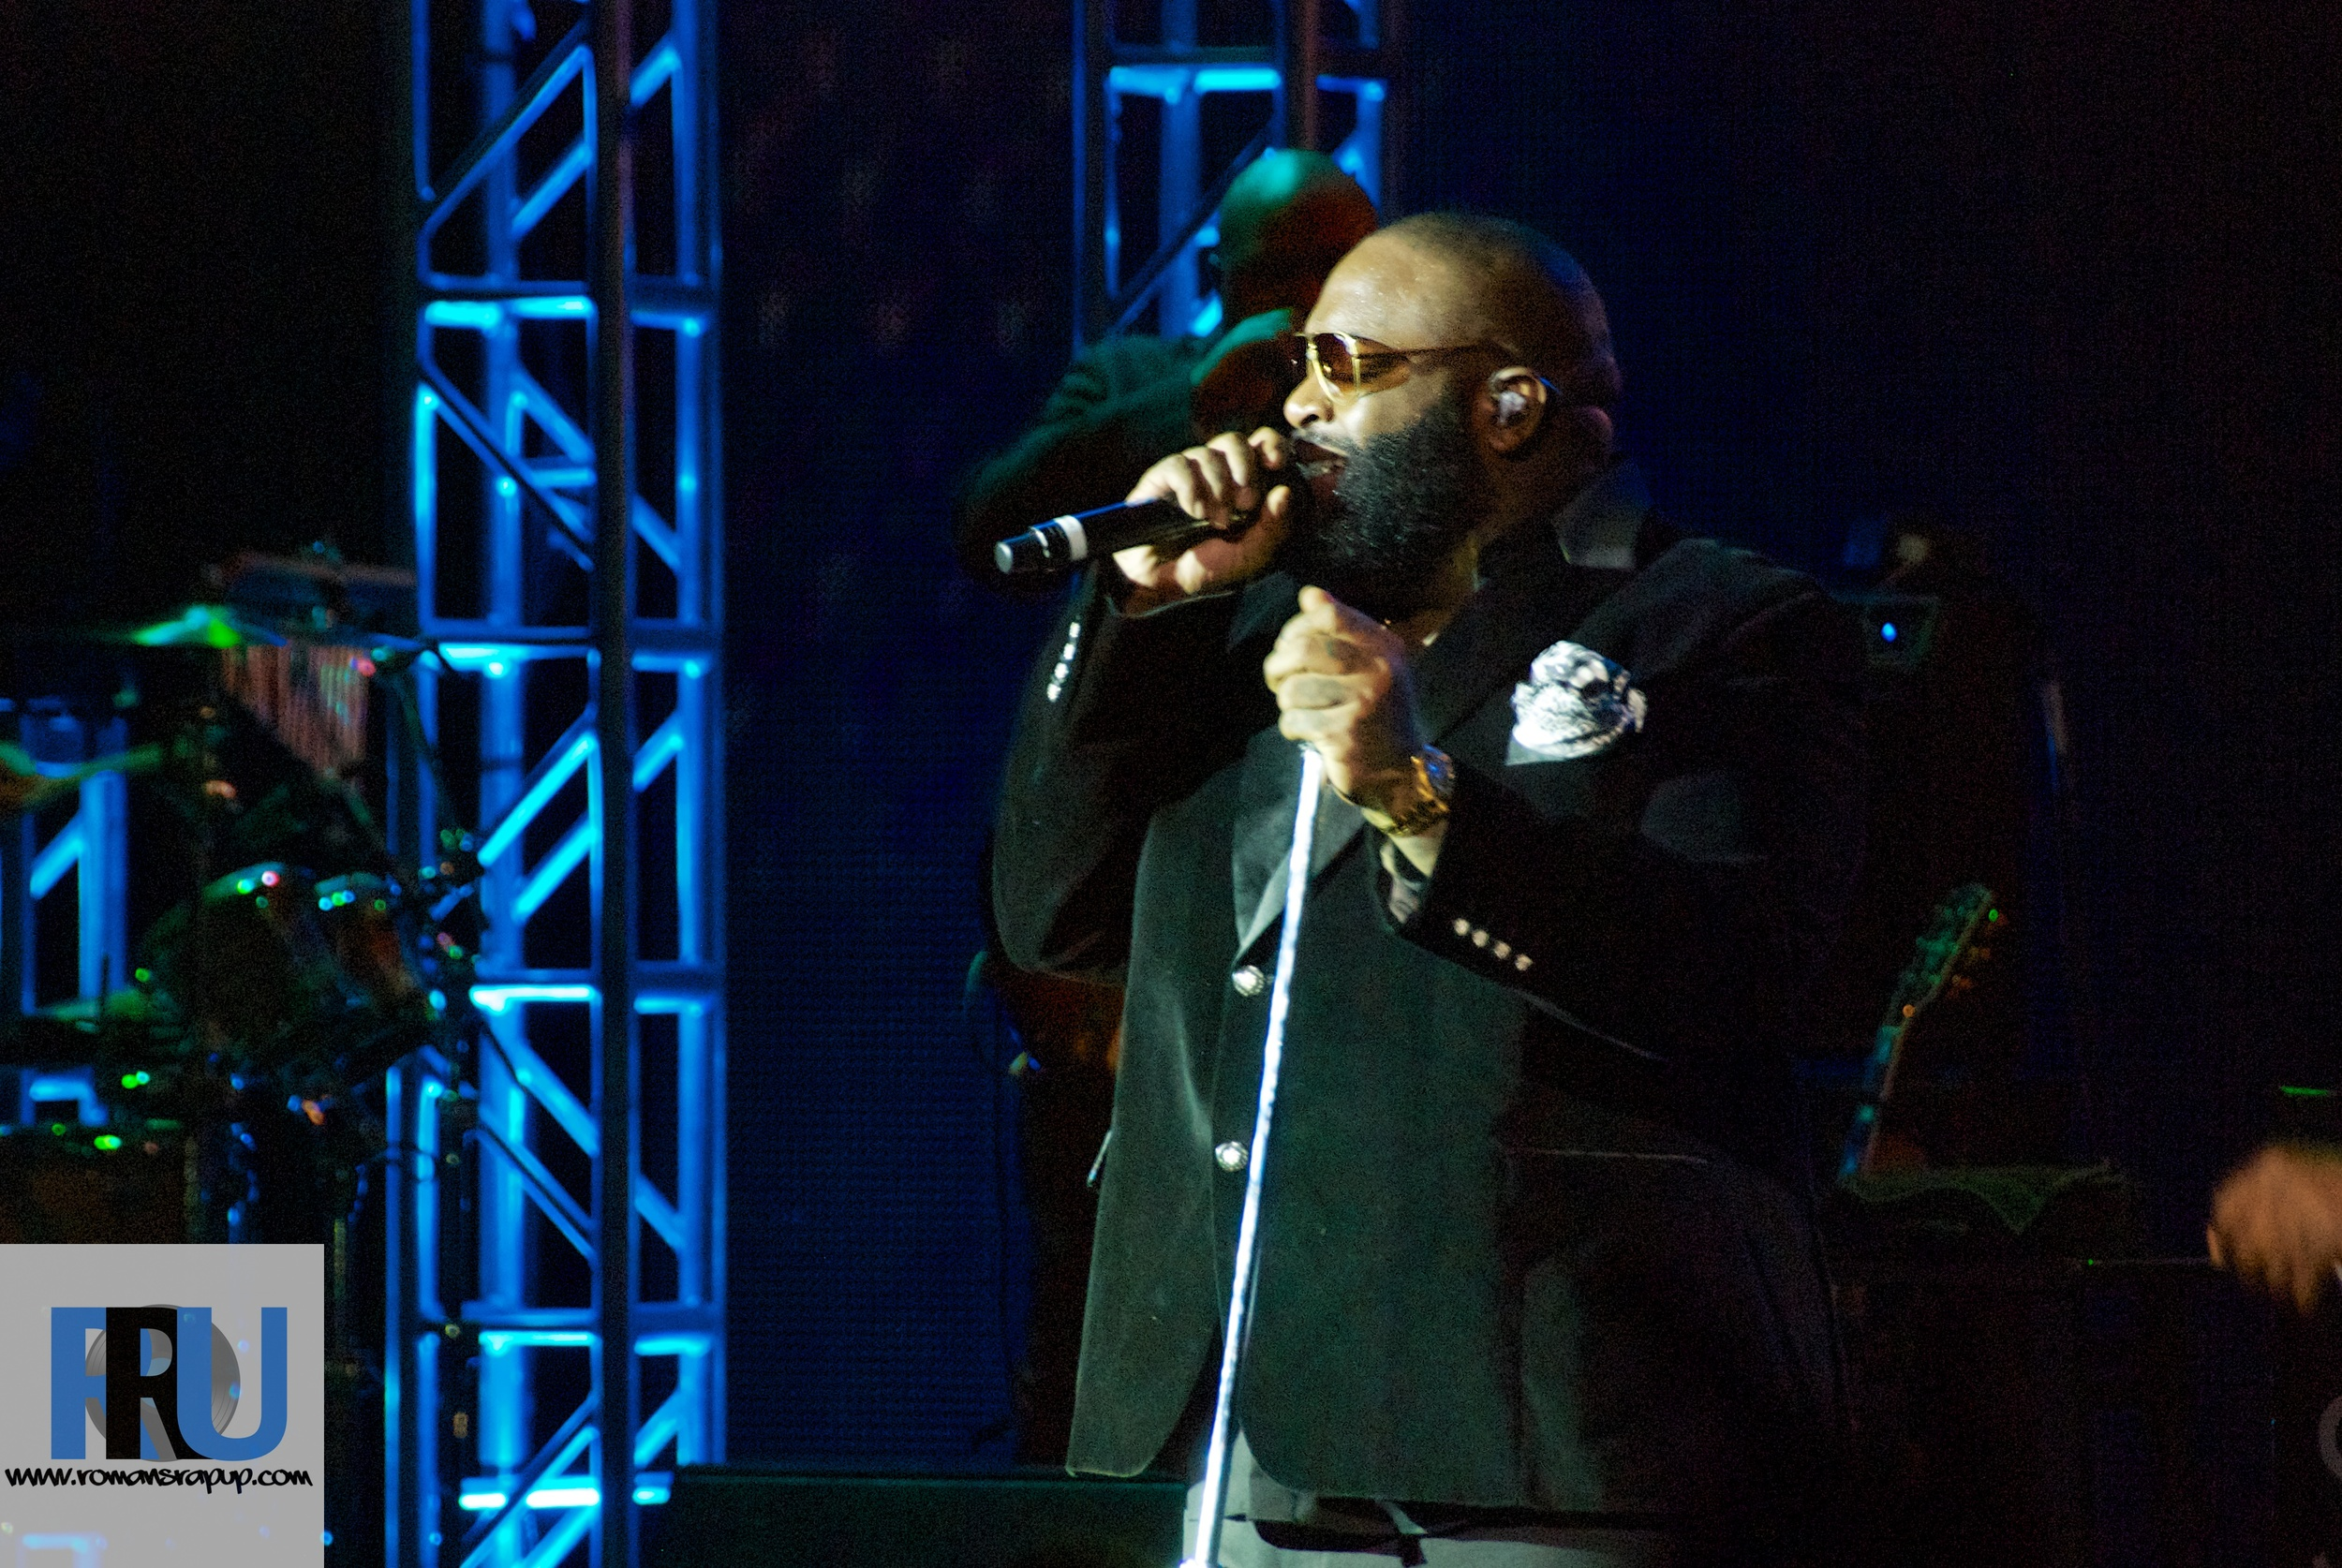 Rick Ross Boston 11-14 11.jpg